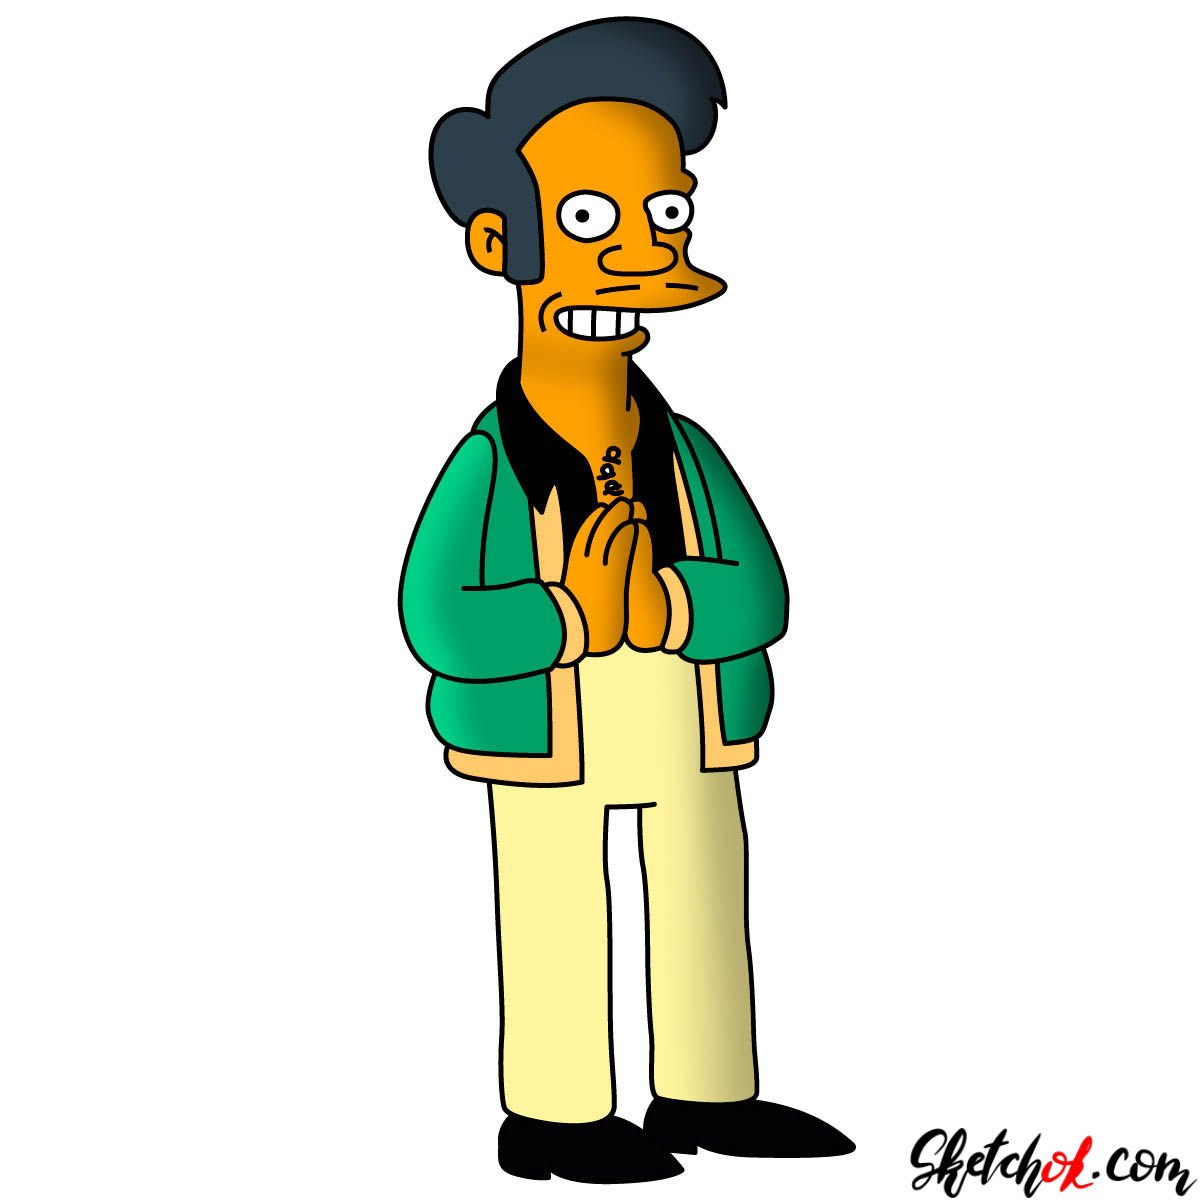 How to draw Apu from The Simpsons series